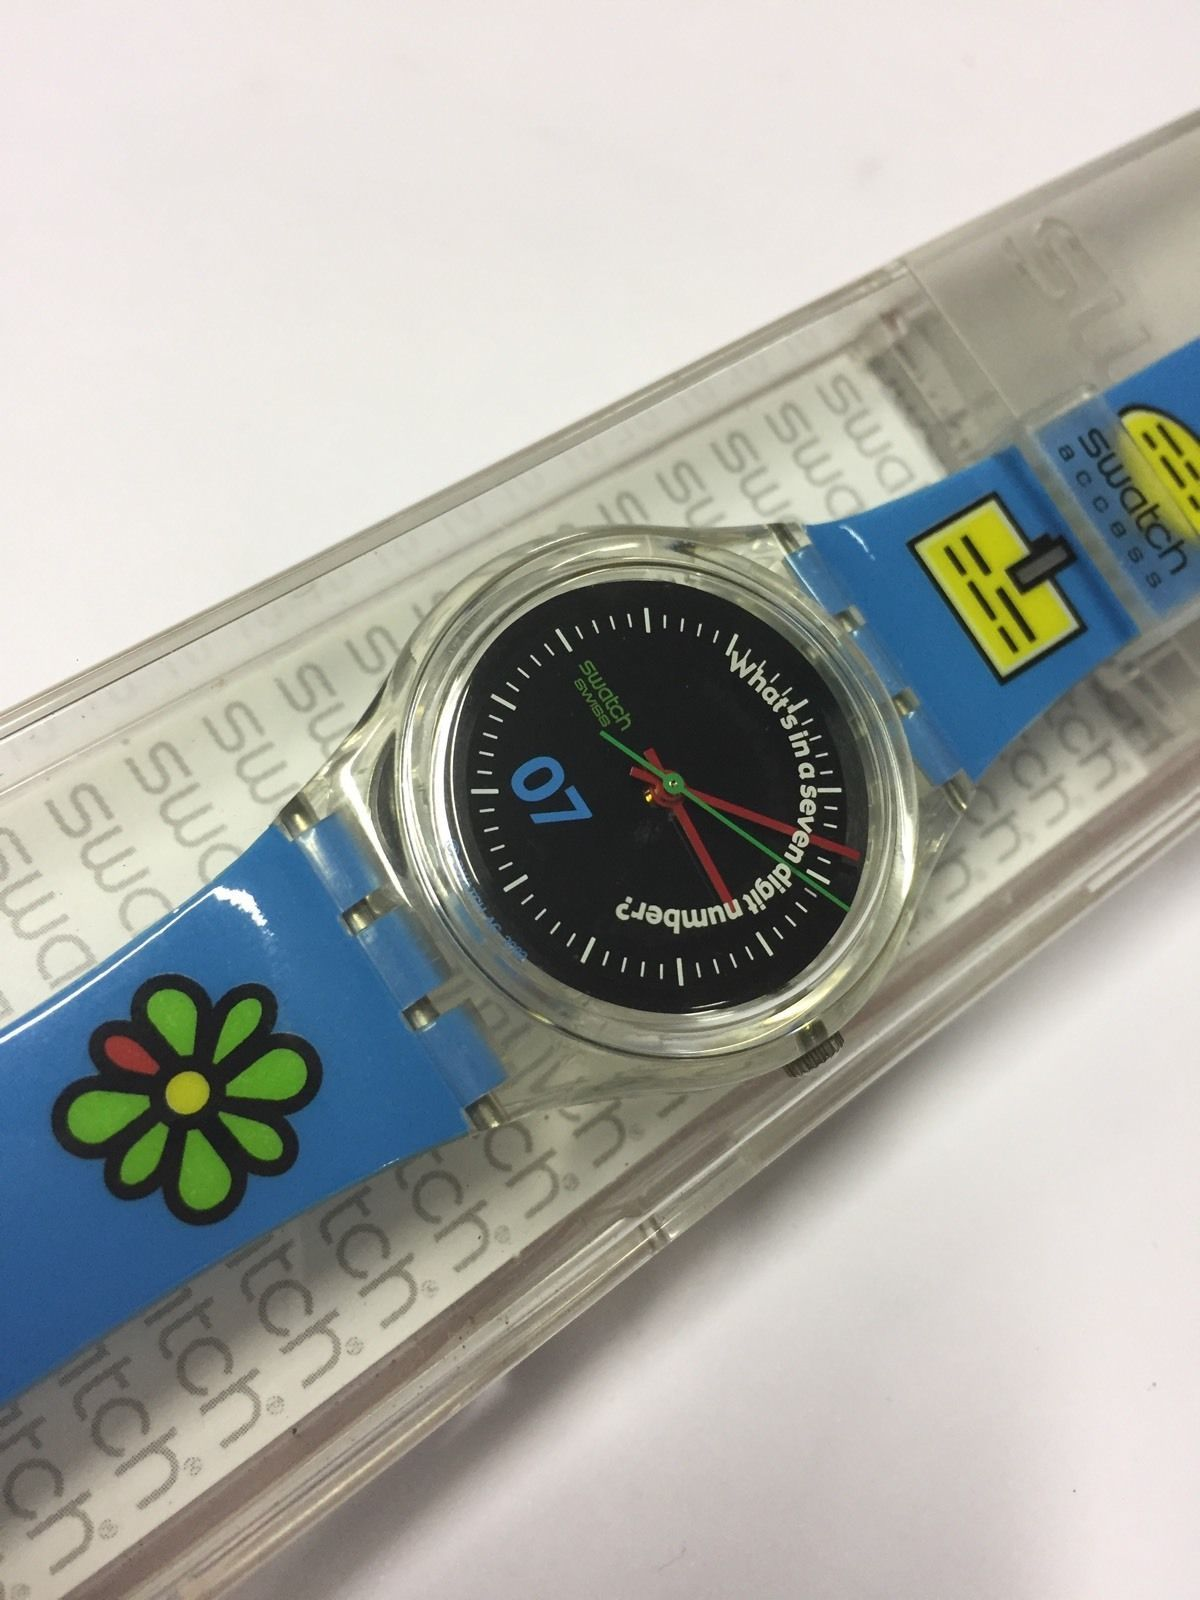 BLUE ICON [SKK125] 2003 Originals Gent * Swatch ^* Watch. New never used, In Mint Condition with box and Papers | eBay!